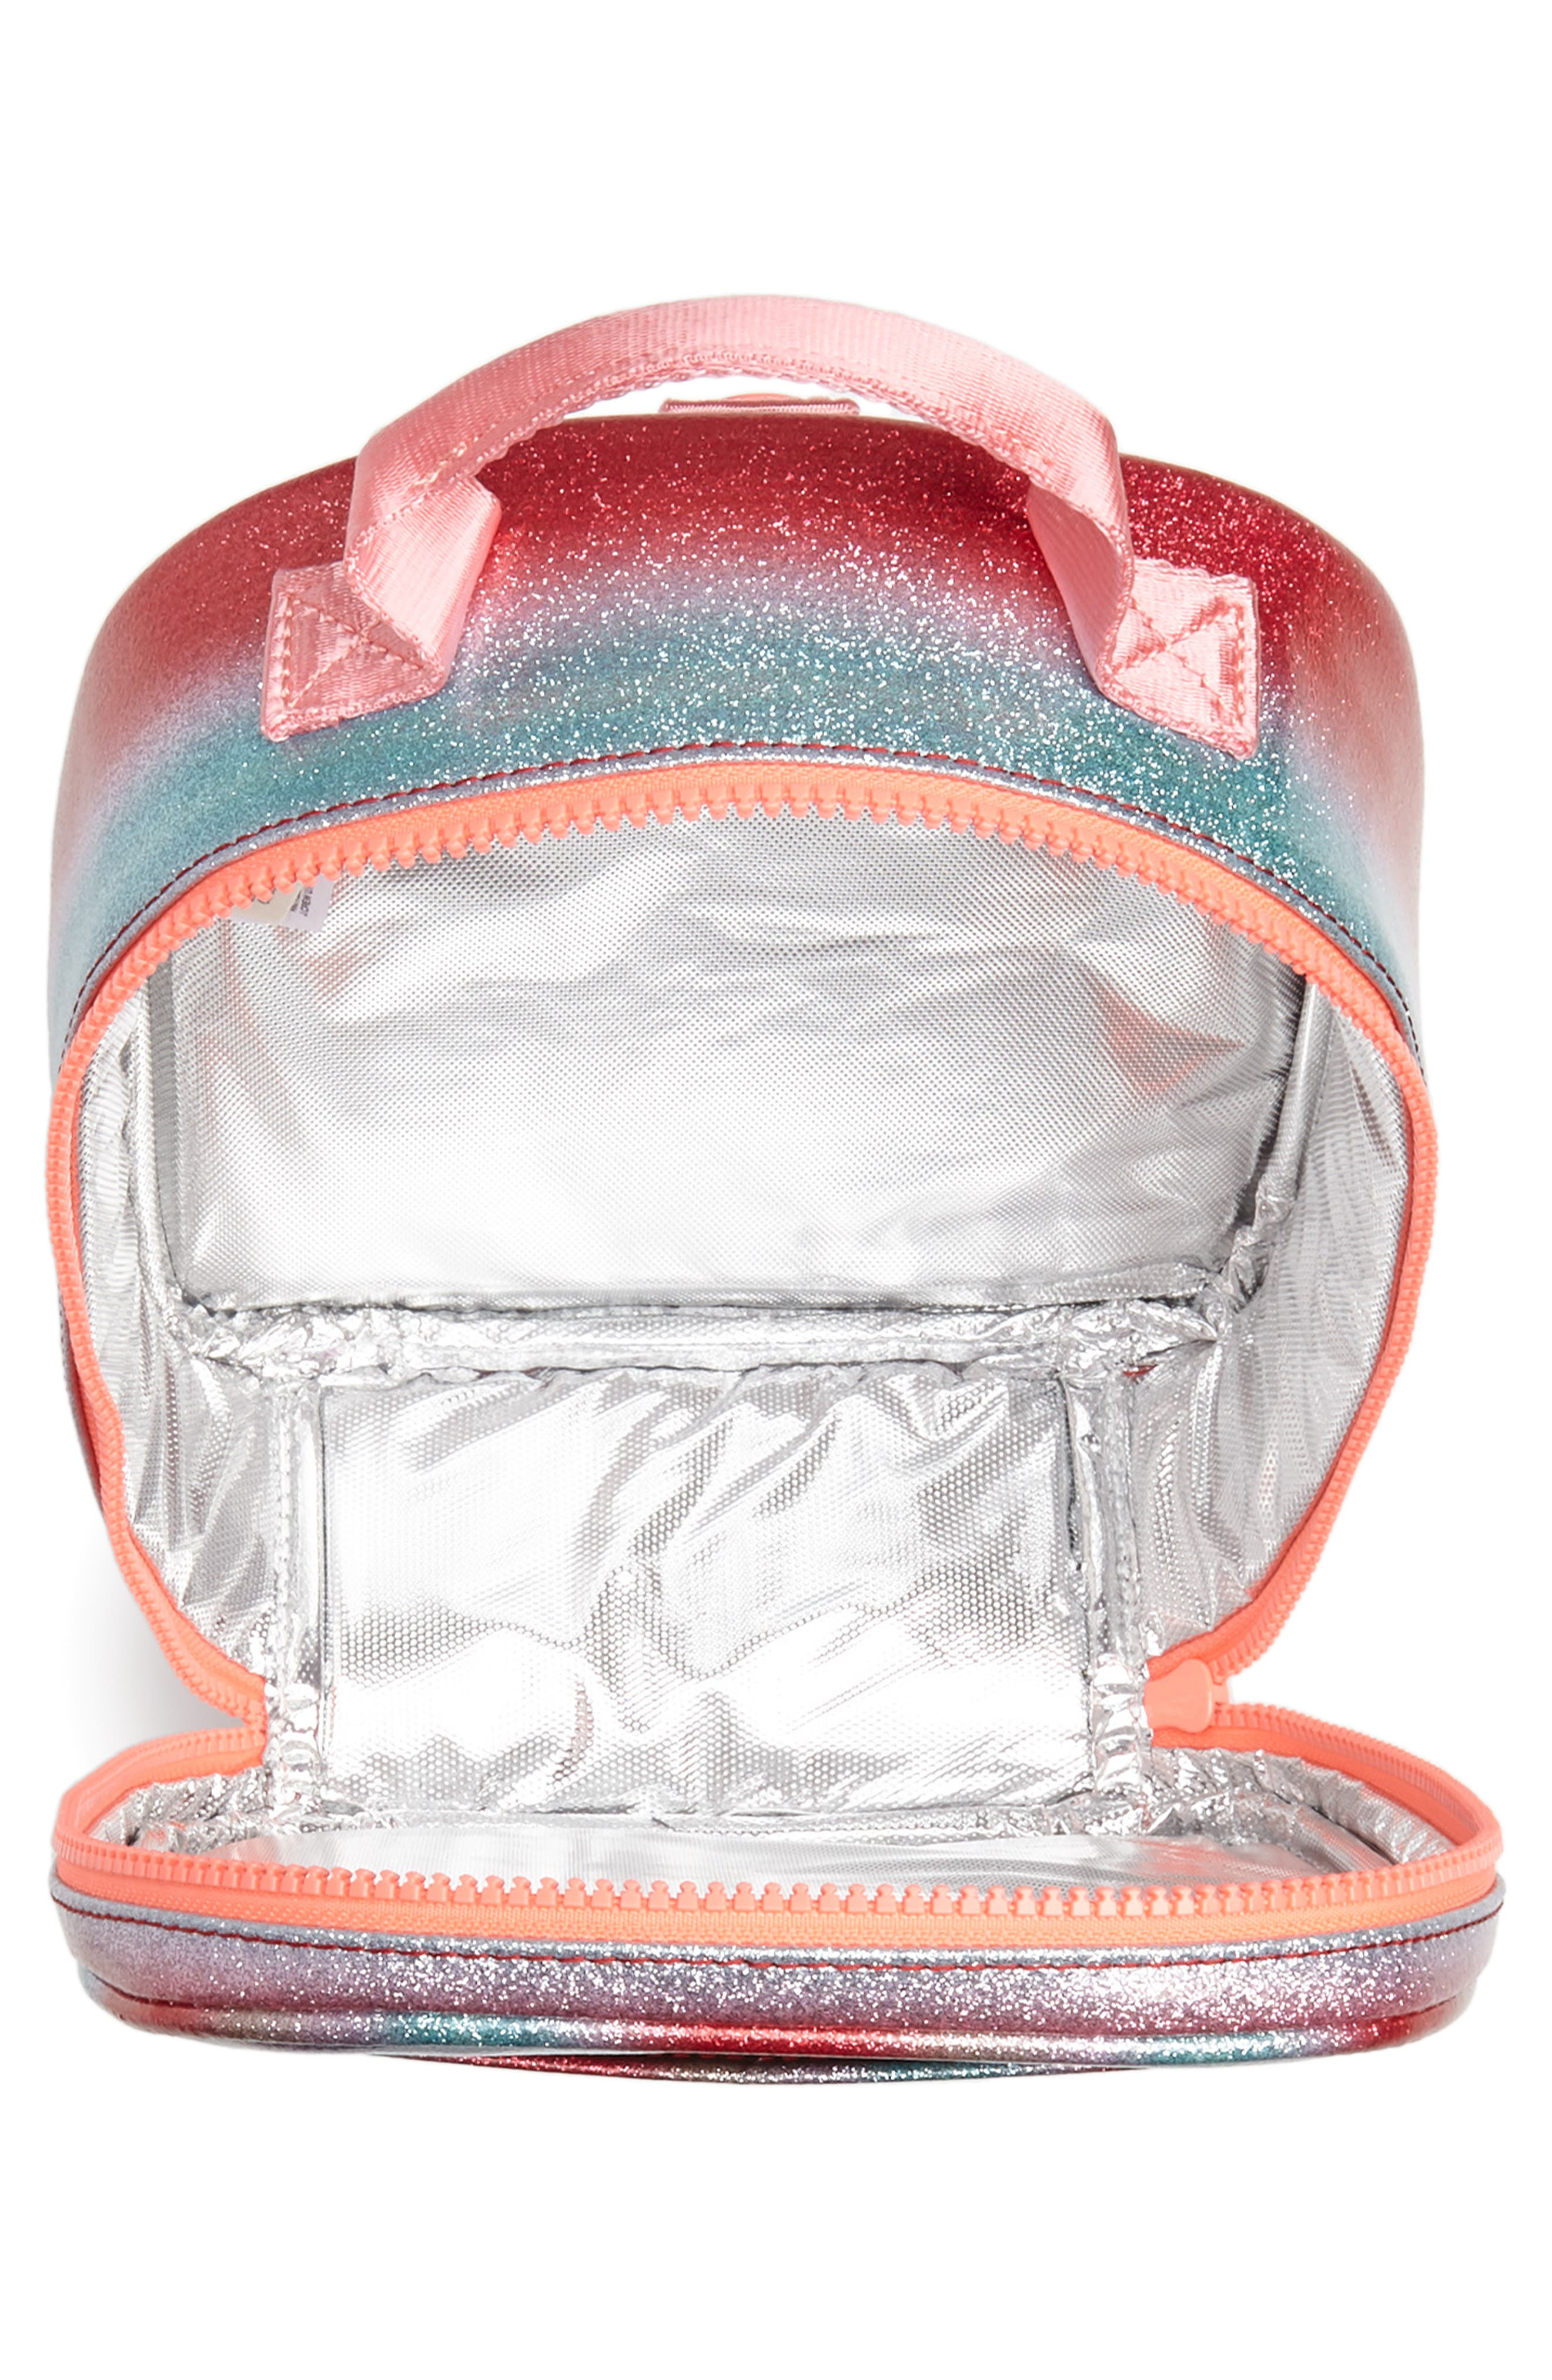 Glitter Stripe Lunch Box,                             Alternate thumbnail 3, color,                             RAINBOW